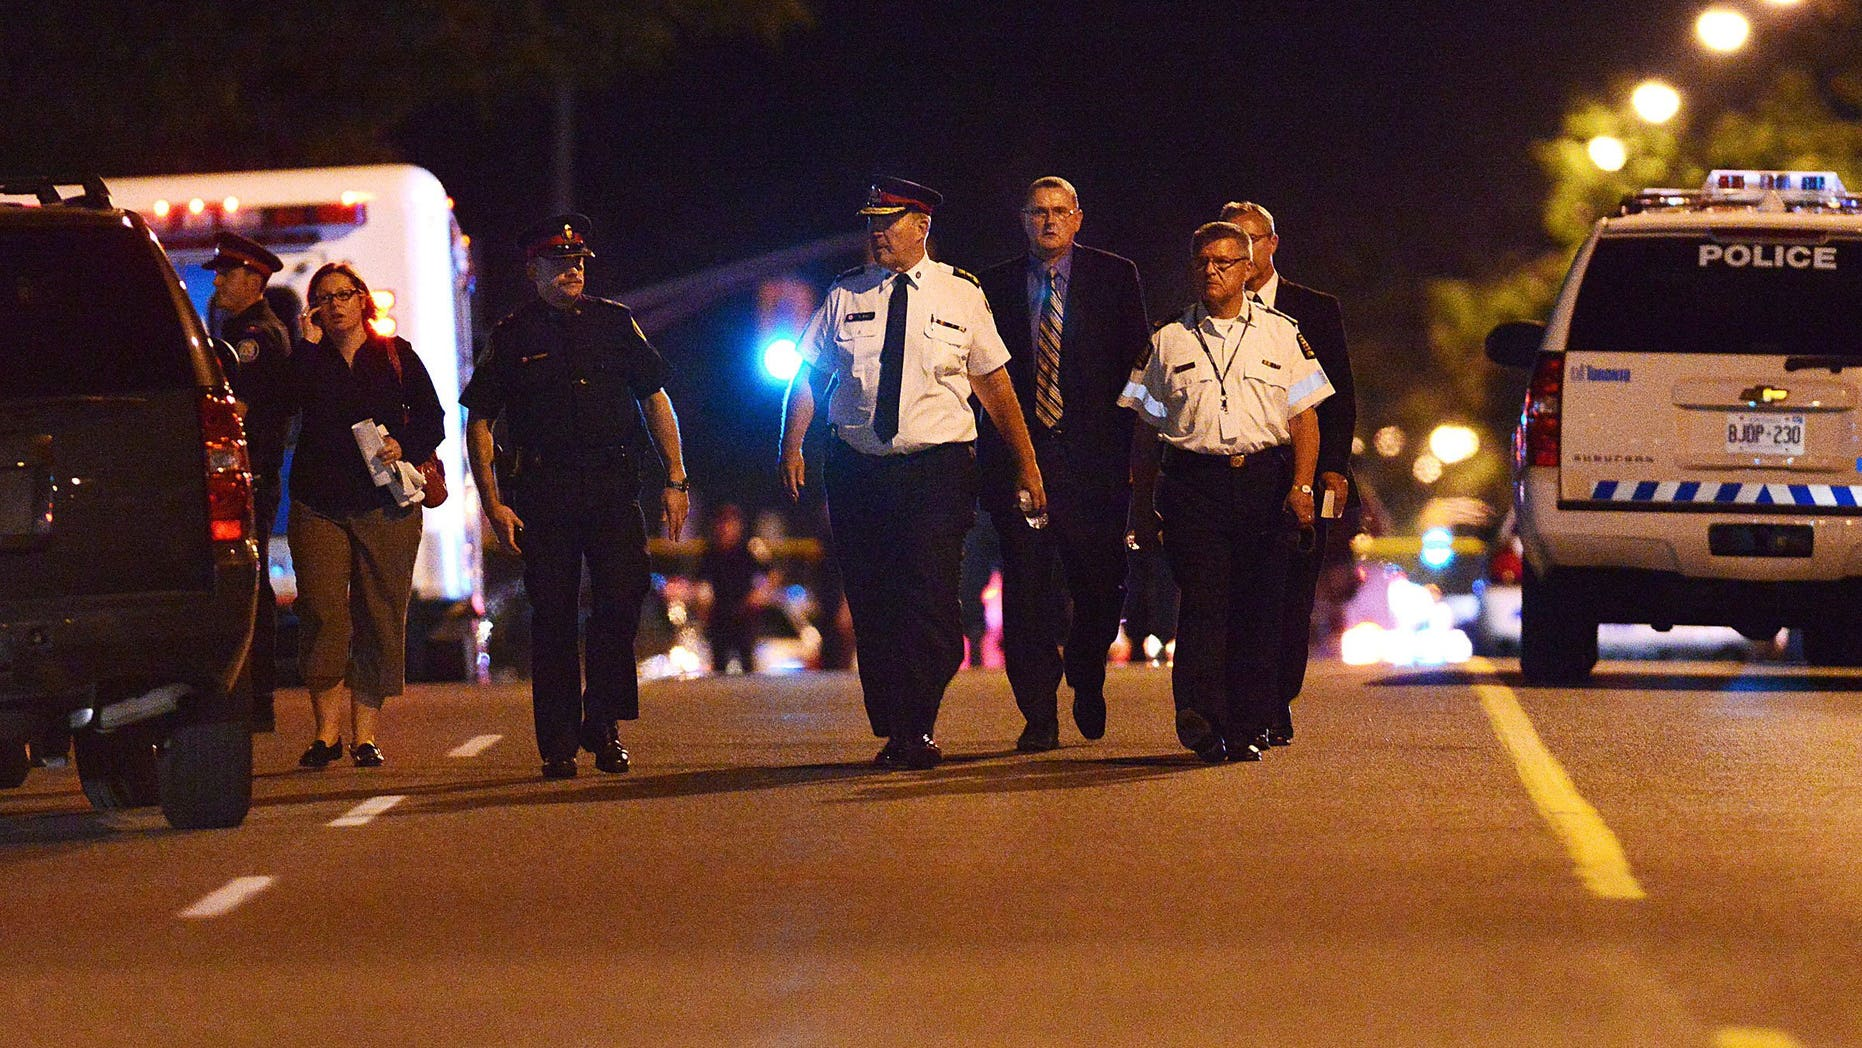 July 17, 2012: Toronto Police Chief Bill Blair walks down Morningside Ave. in Toronto following a shooting that left at least 19 people injured and two dead at a house party.